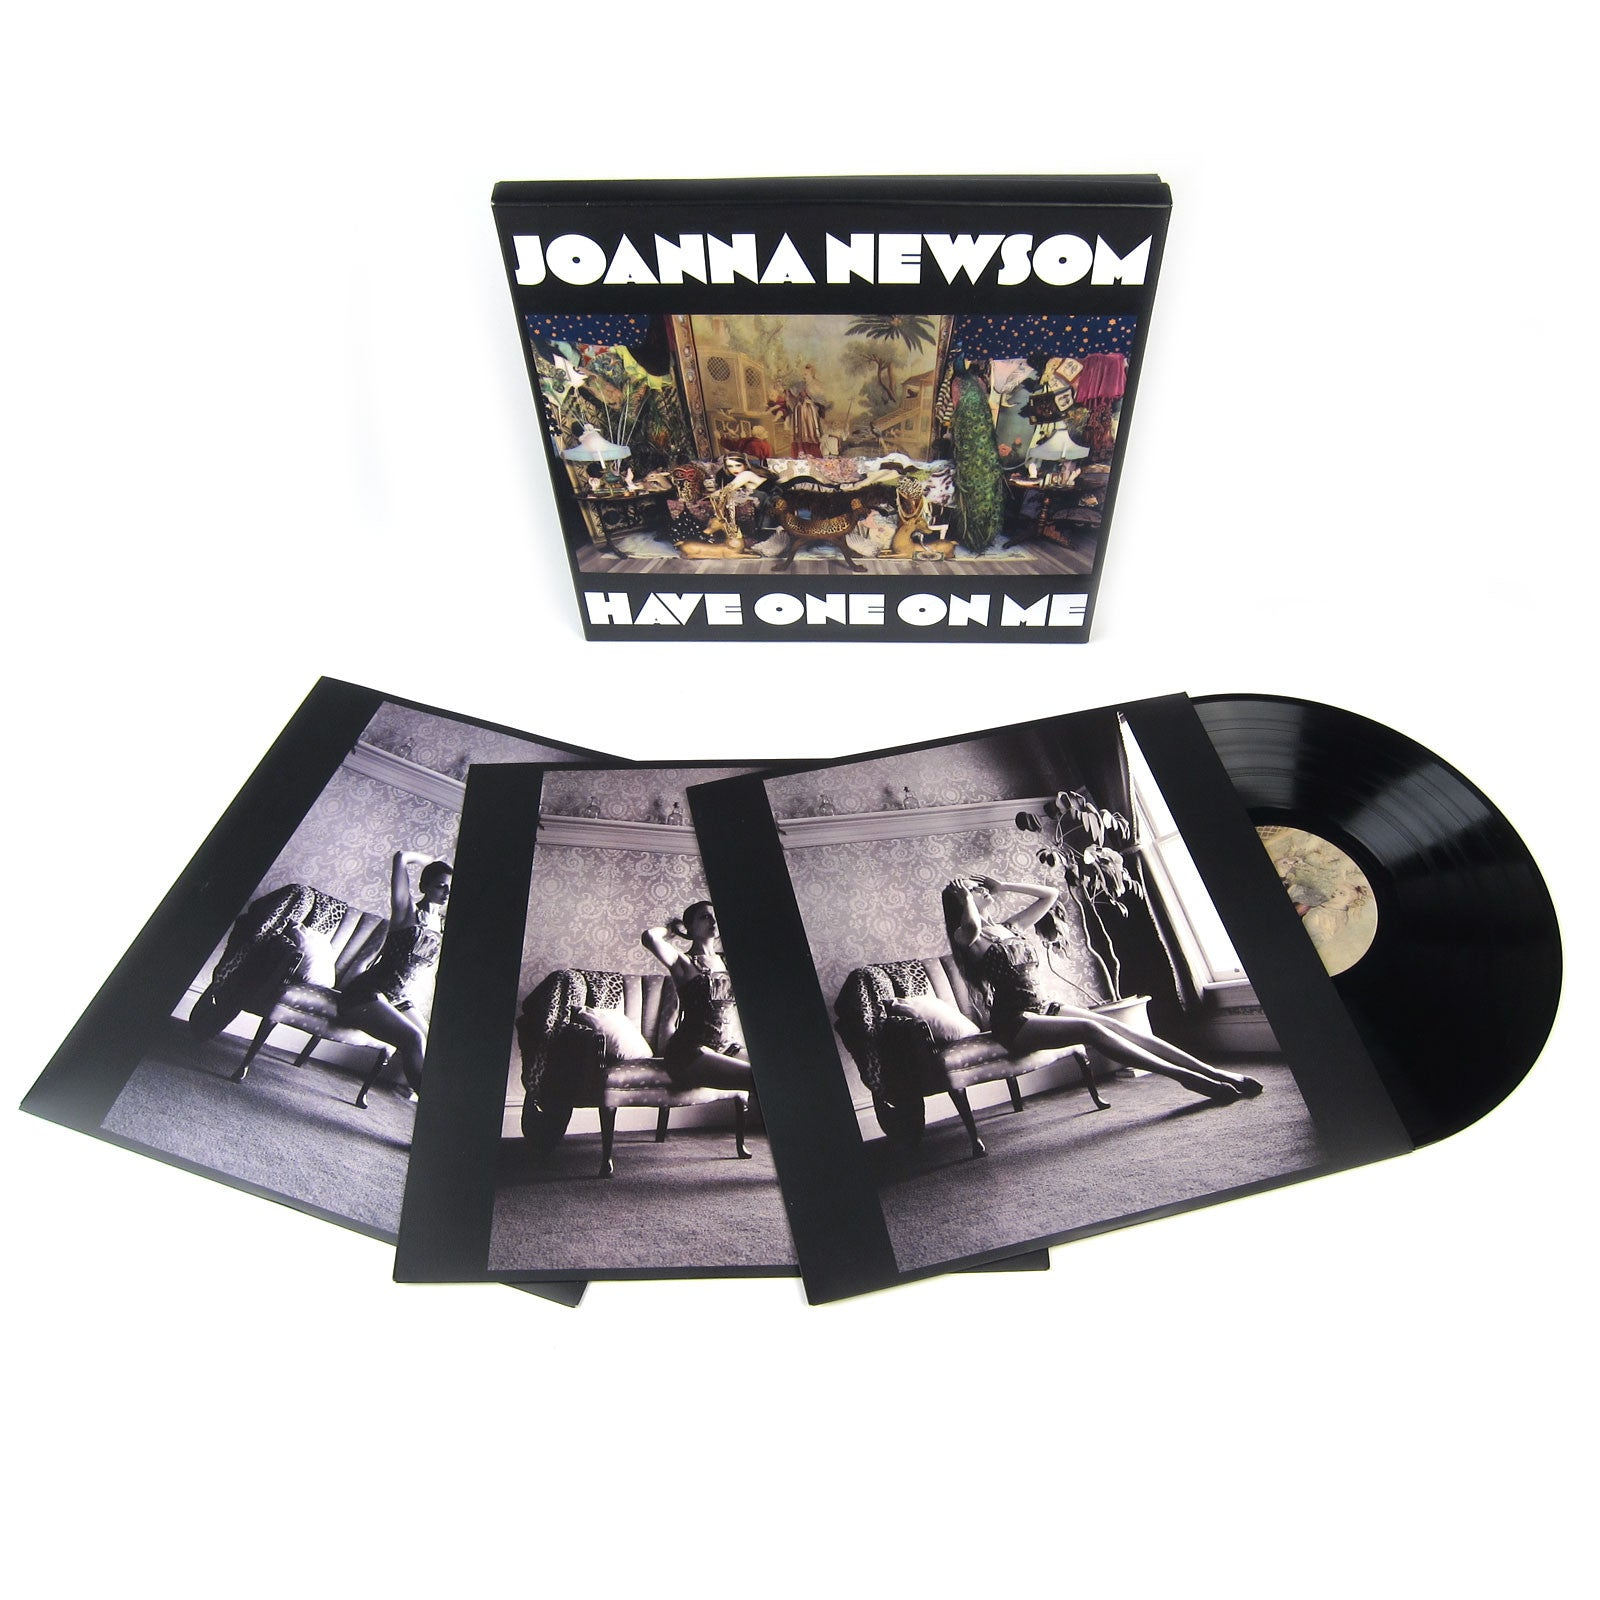 a2604ea867bcb Joanna Newsom  Have One On Me Vinyl 3LP Boxset – TurntableLab ...